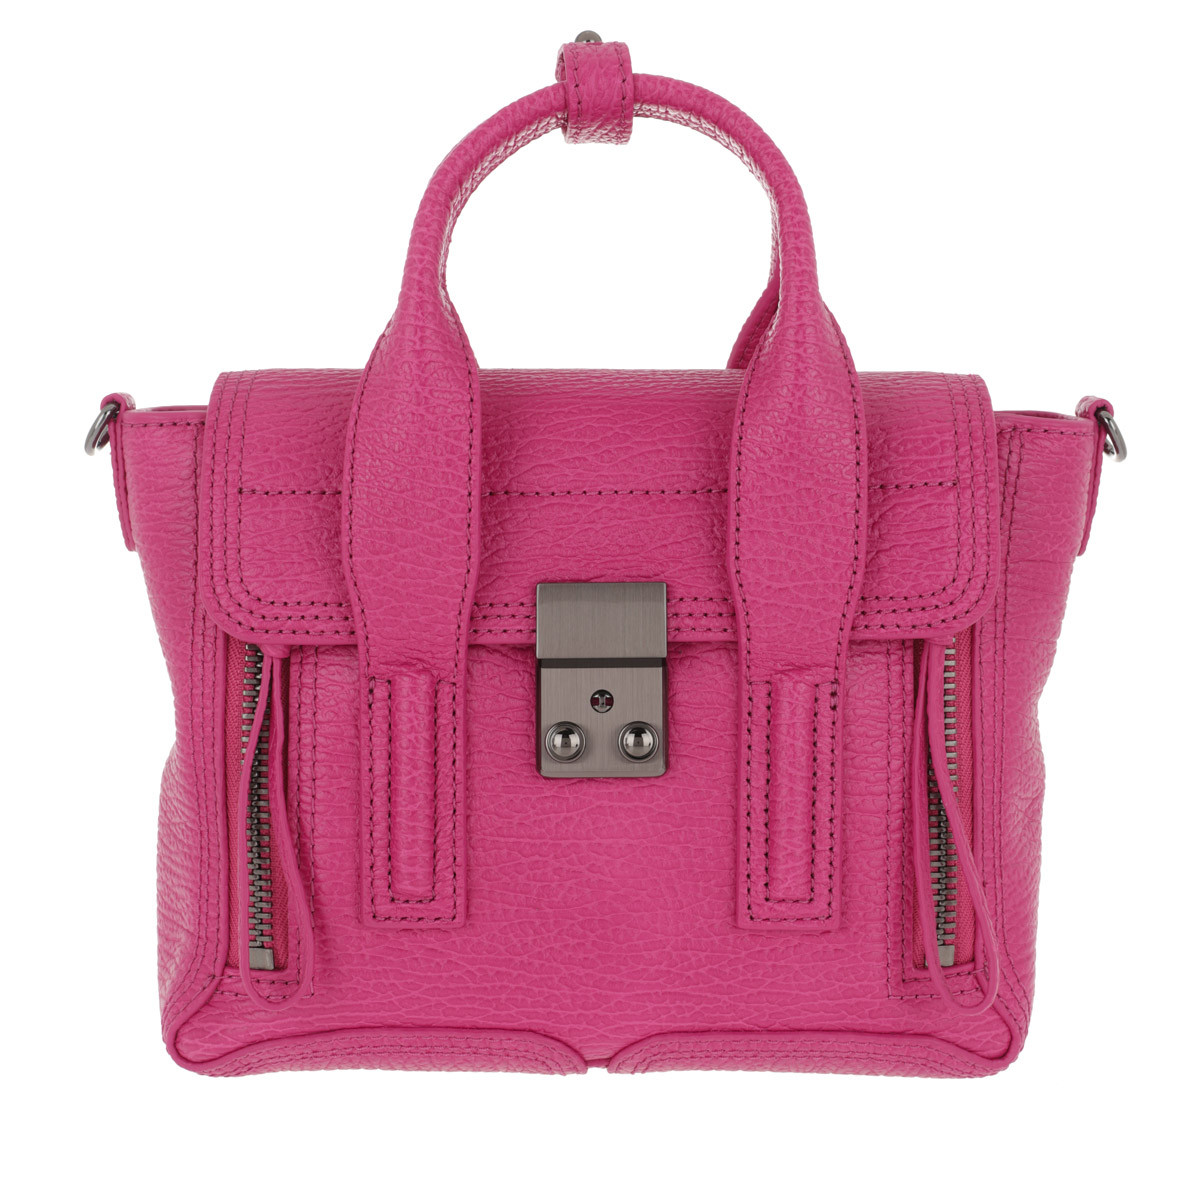 3.1 Phillip Lim Satchel Bag - Pashli Mini Satchel Bag Fuchsia - in pink - für Damen